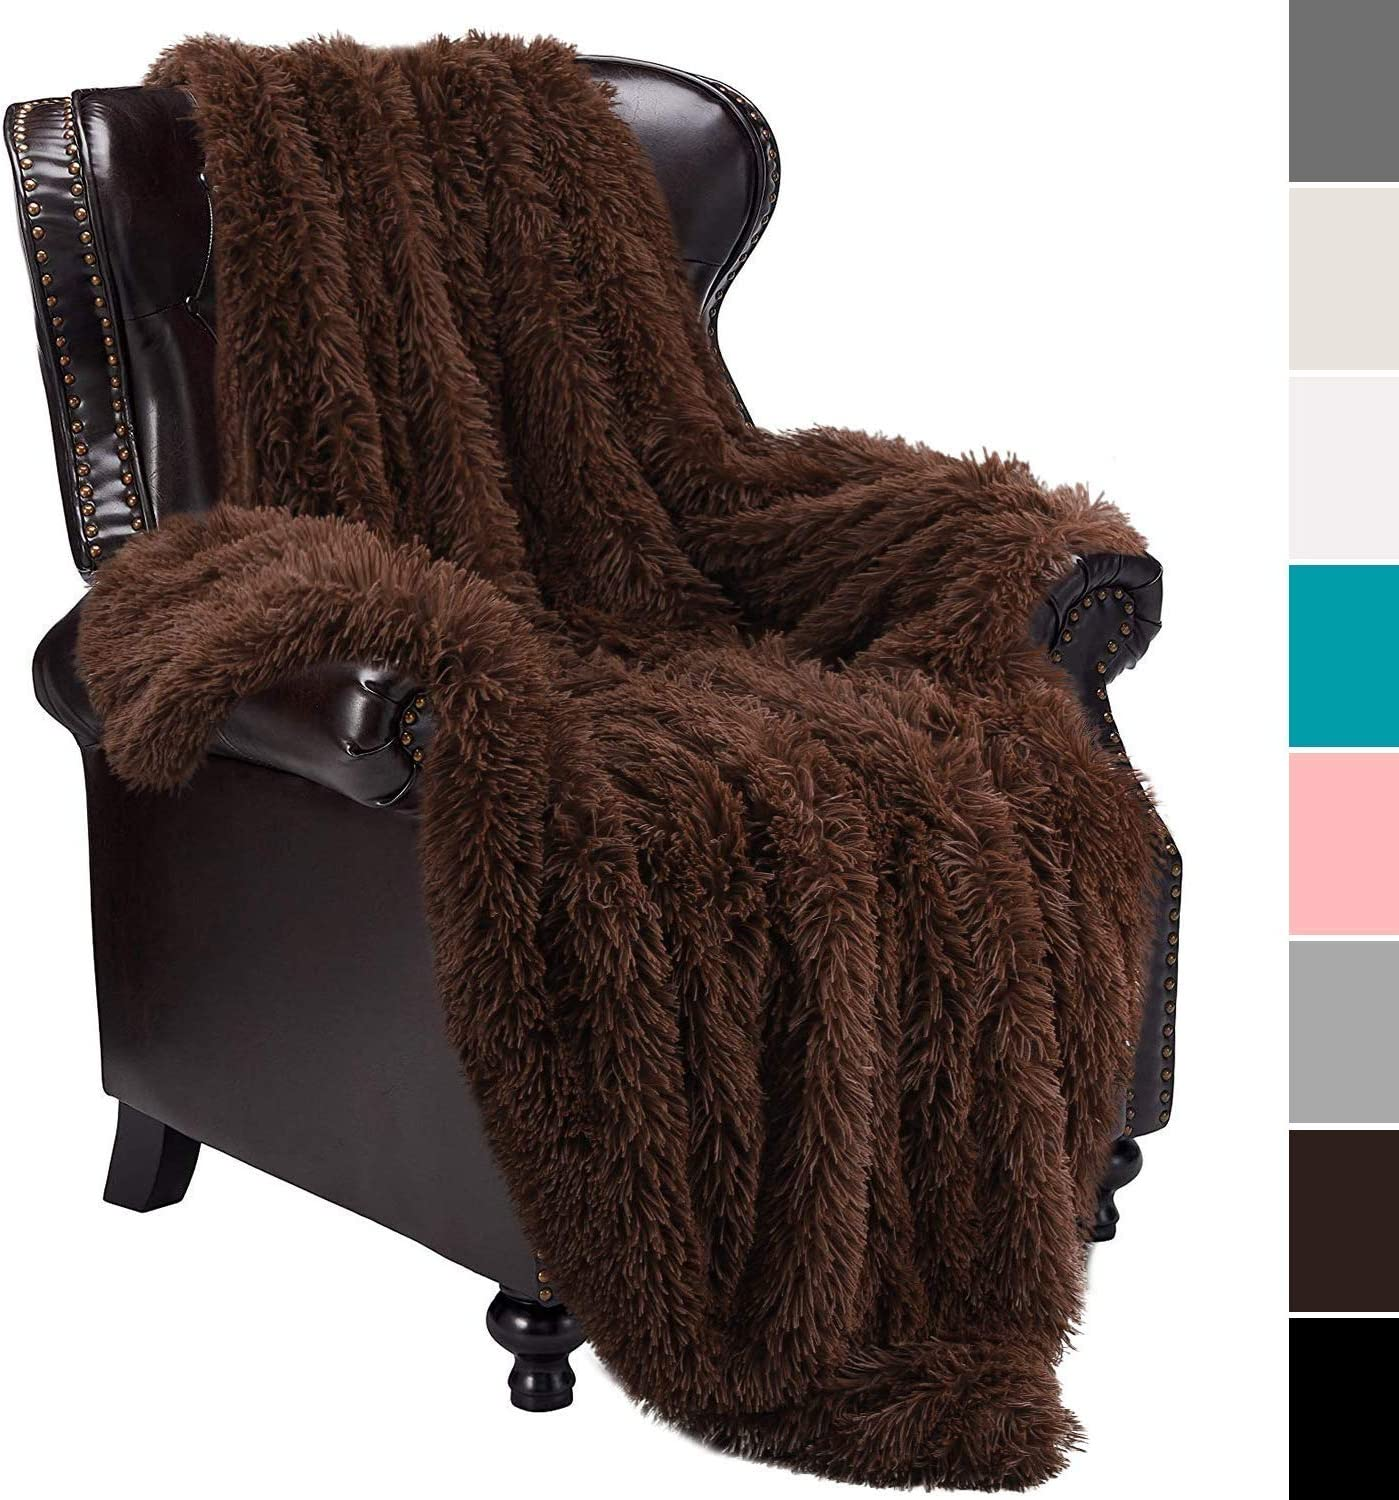 MagiDeal Fleece Throw Blanket Comfy Soft Blankets Sofa Bed Couch Car Office